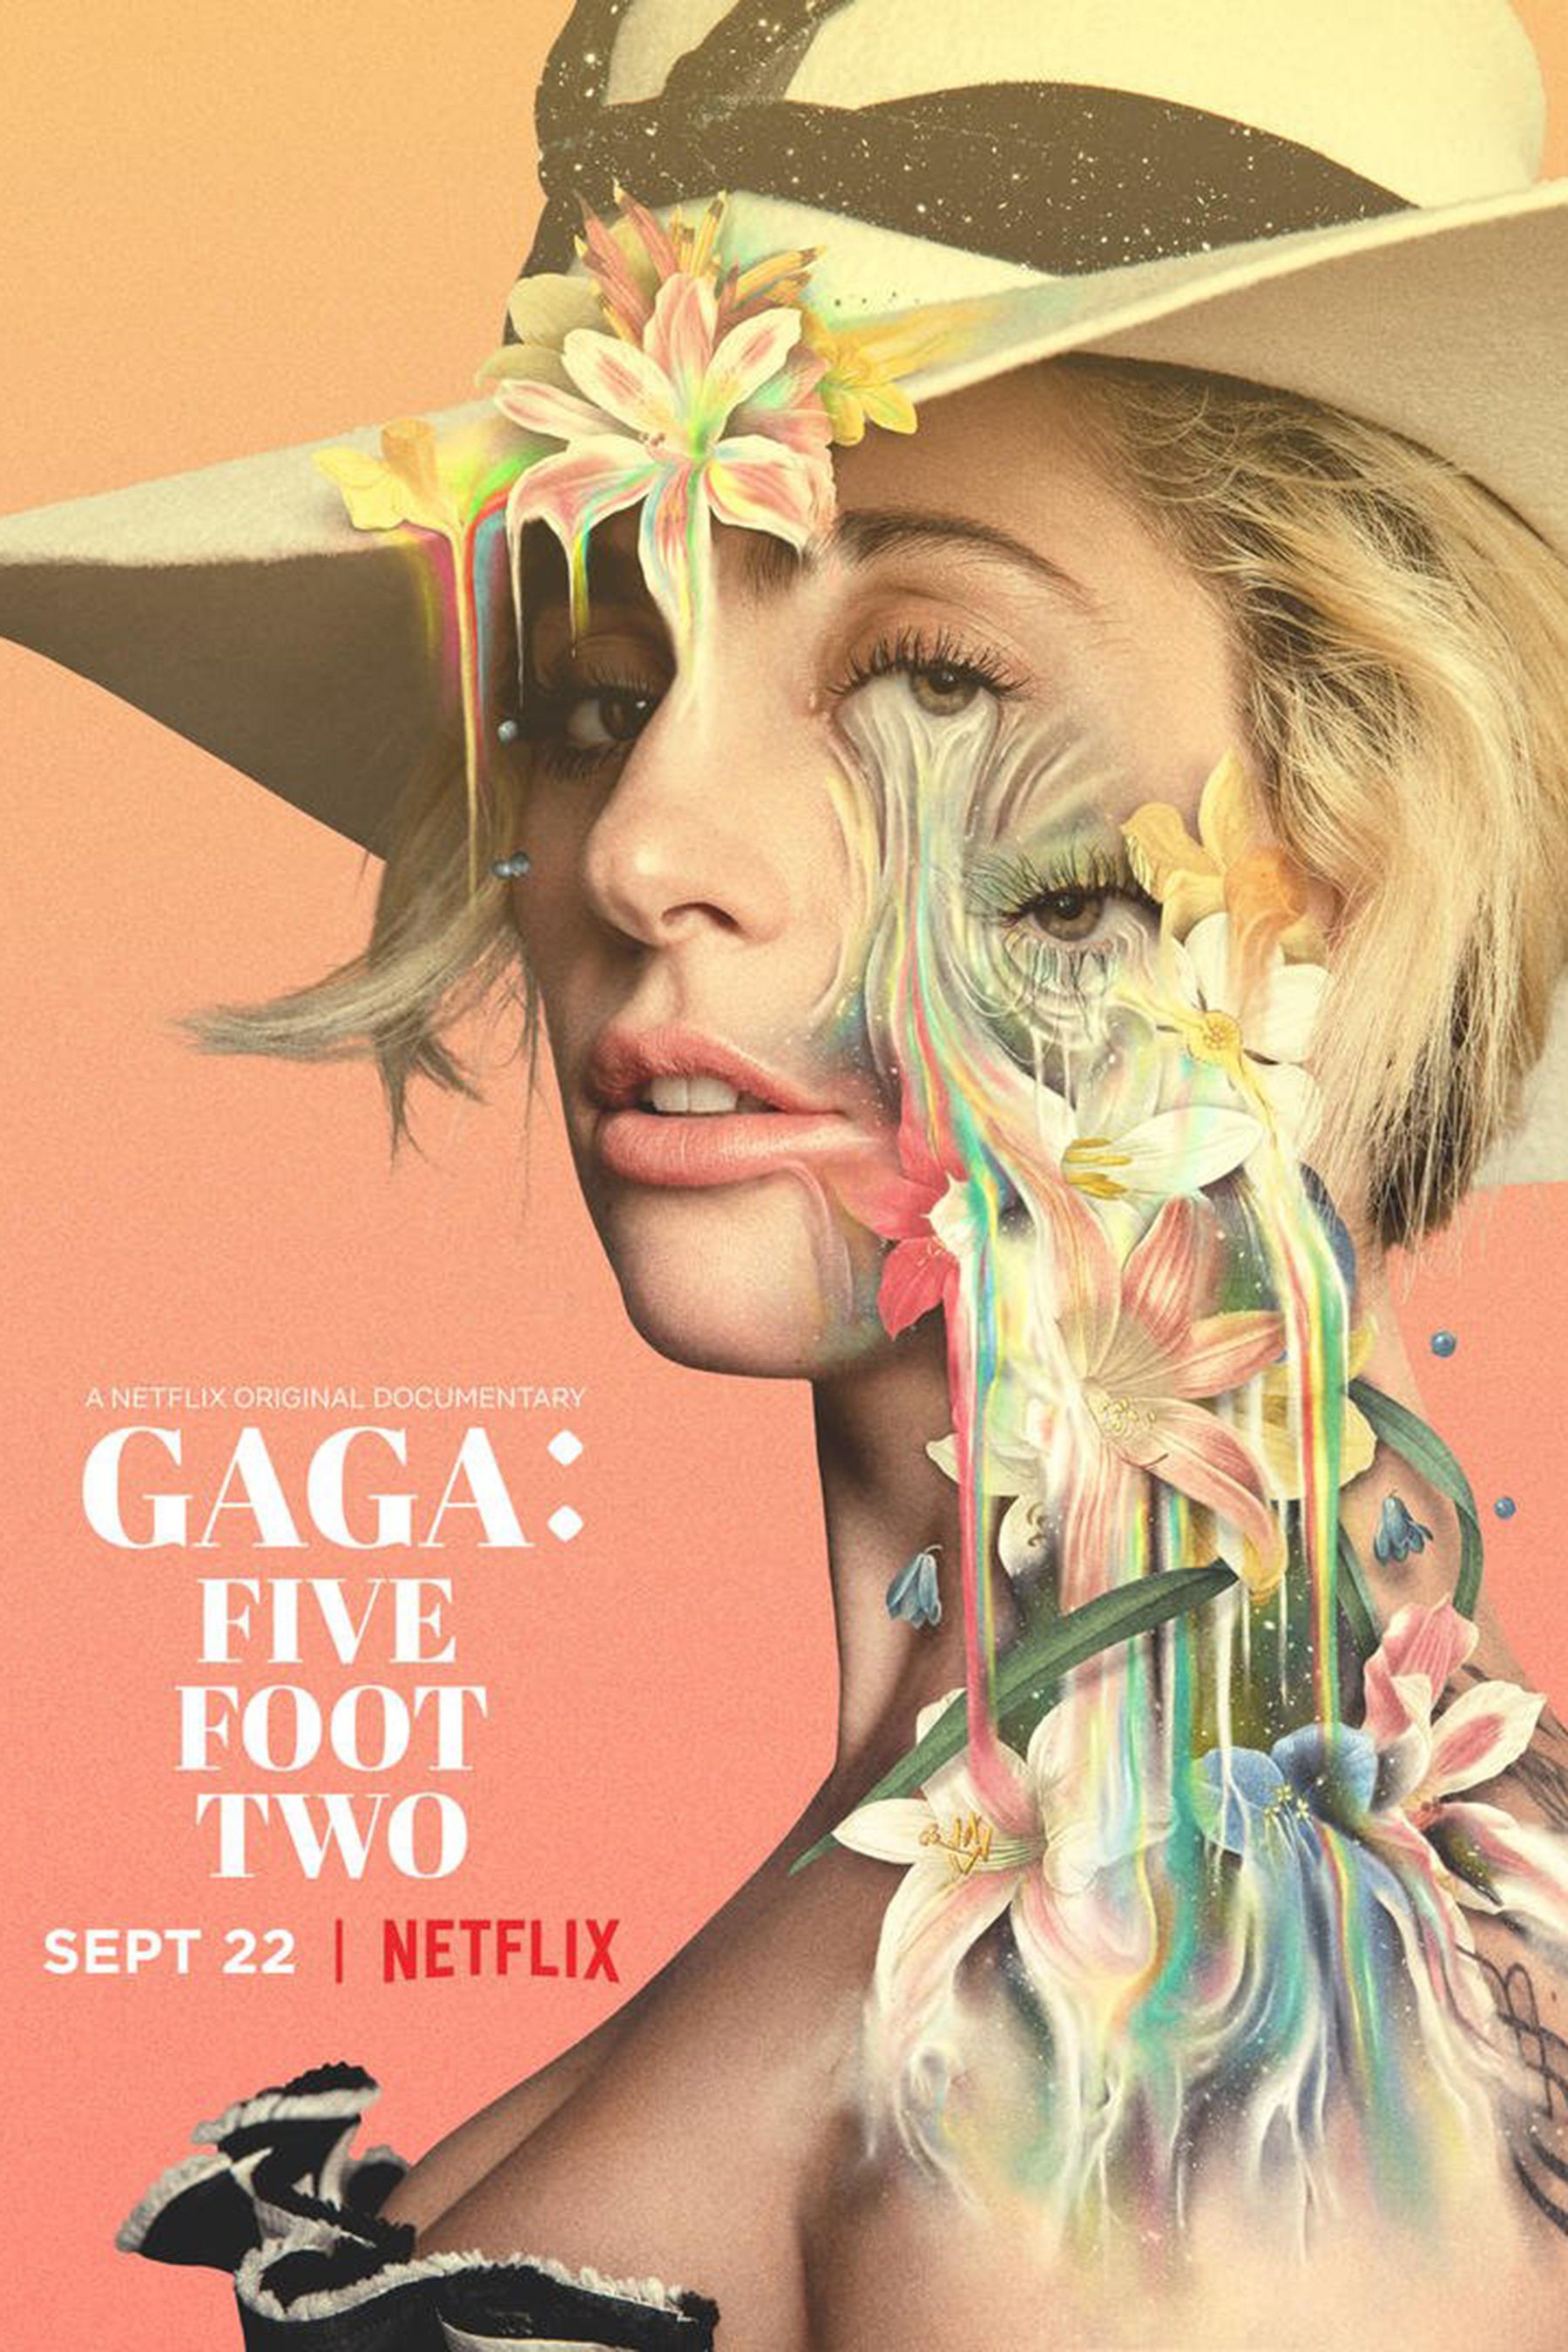 Gaga: Five Foot Two | Netflix & Wine by Swell Made Co.